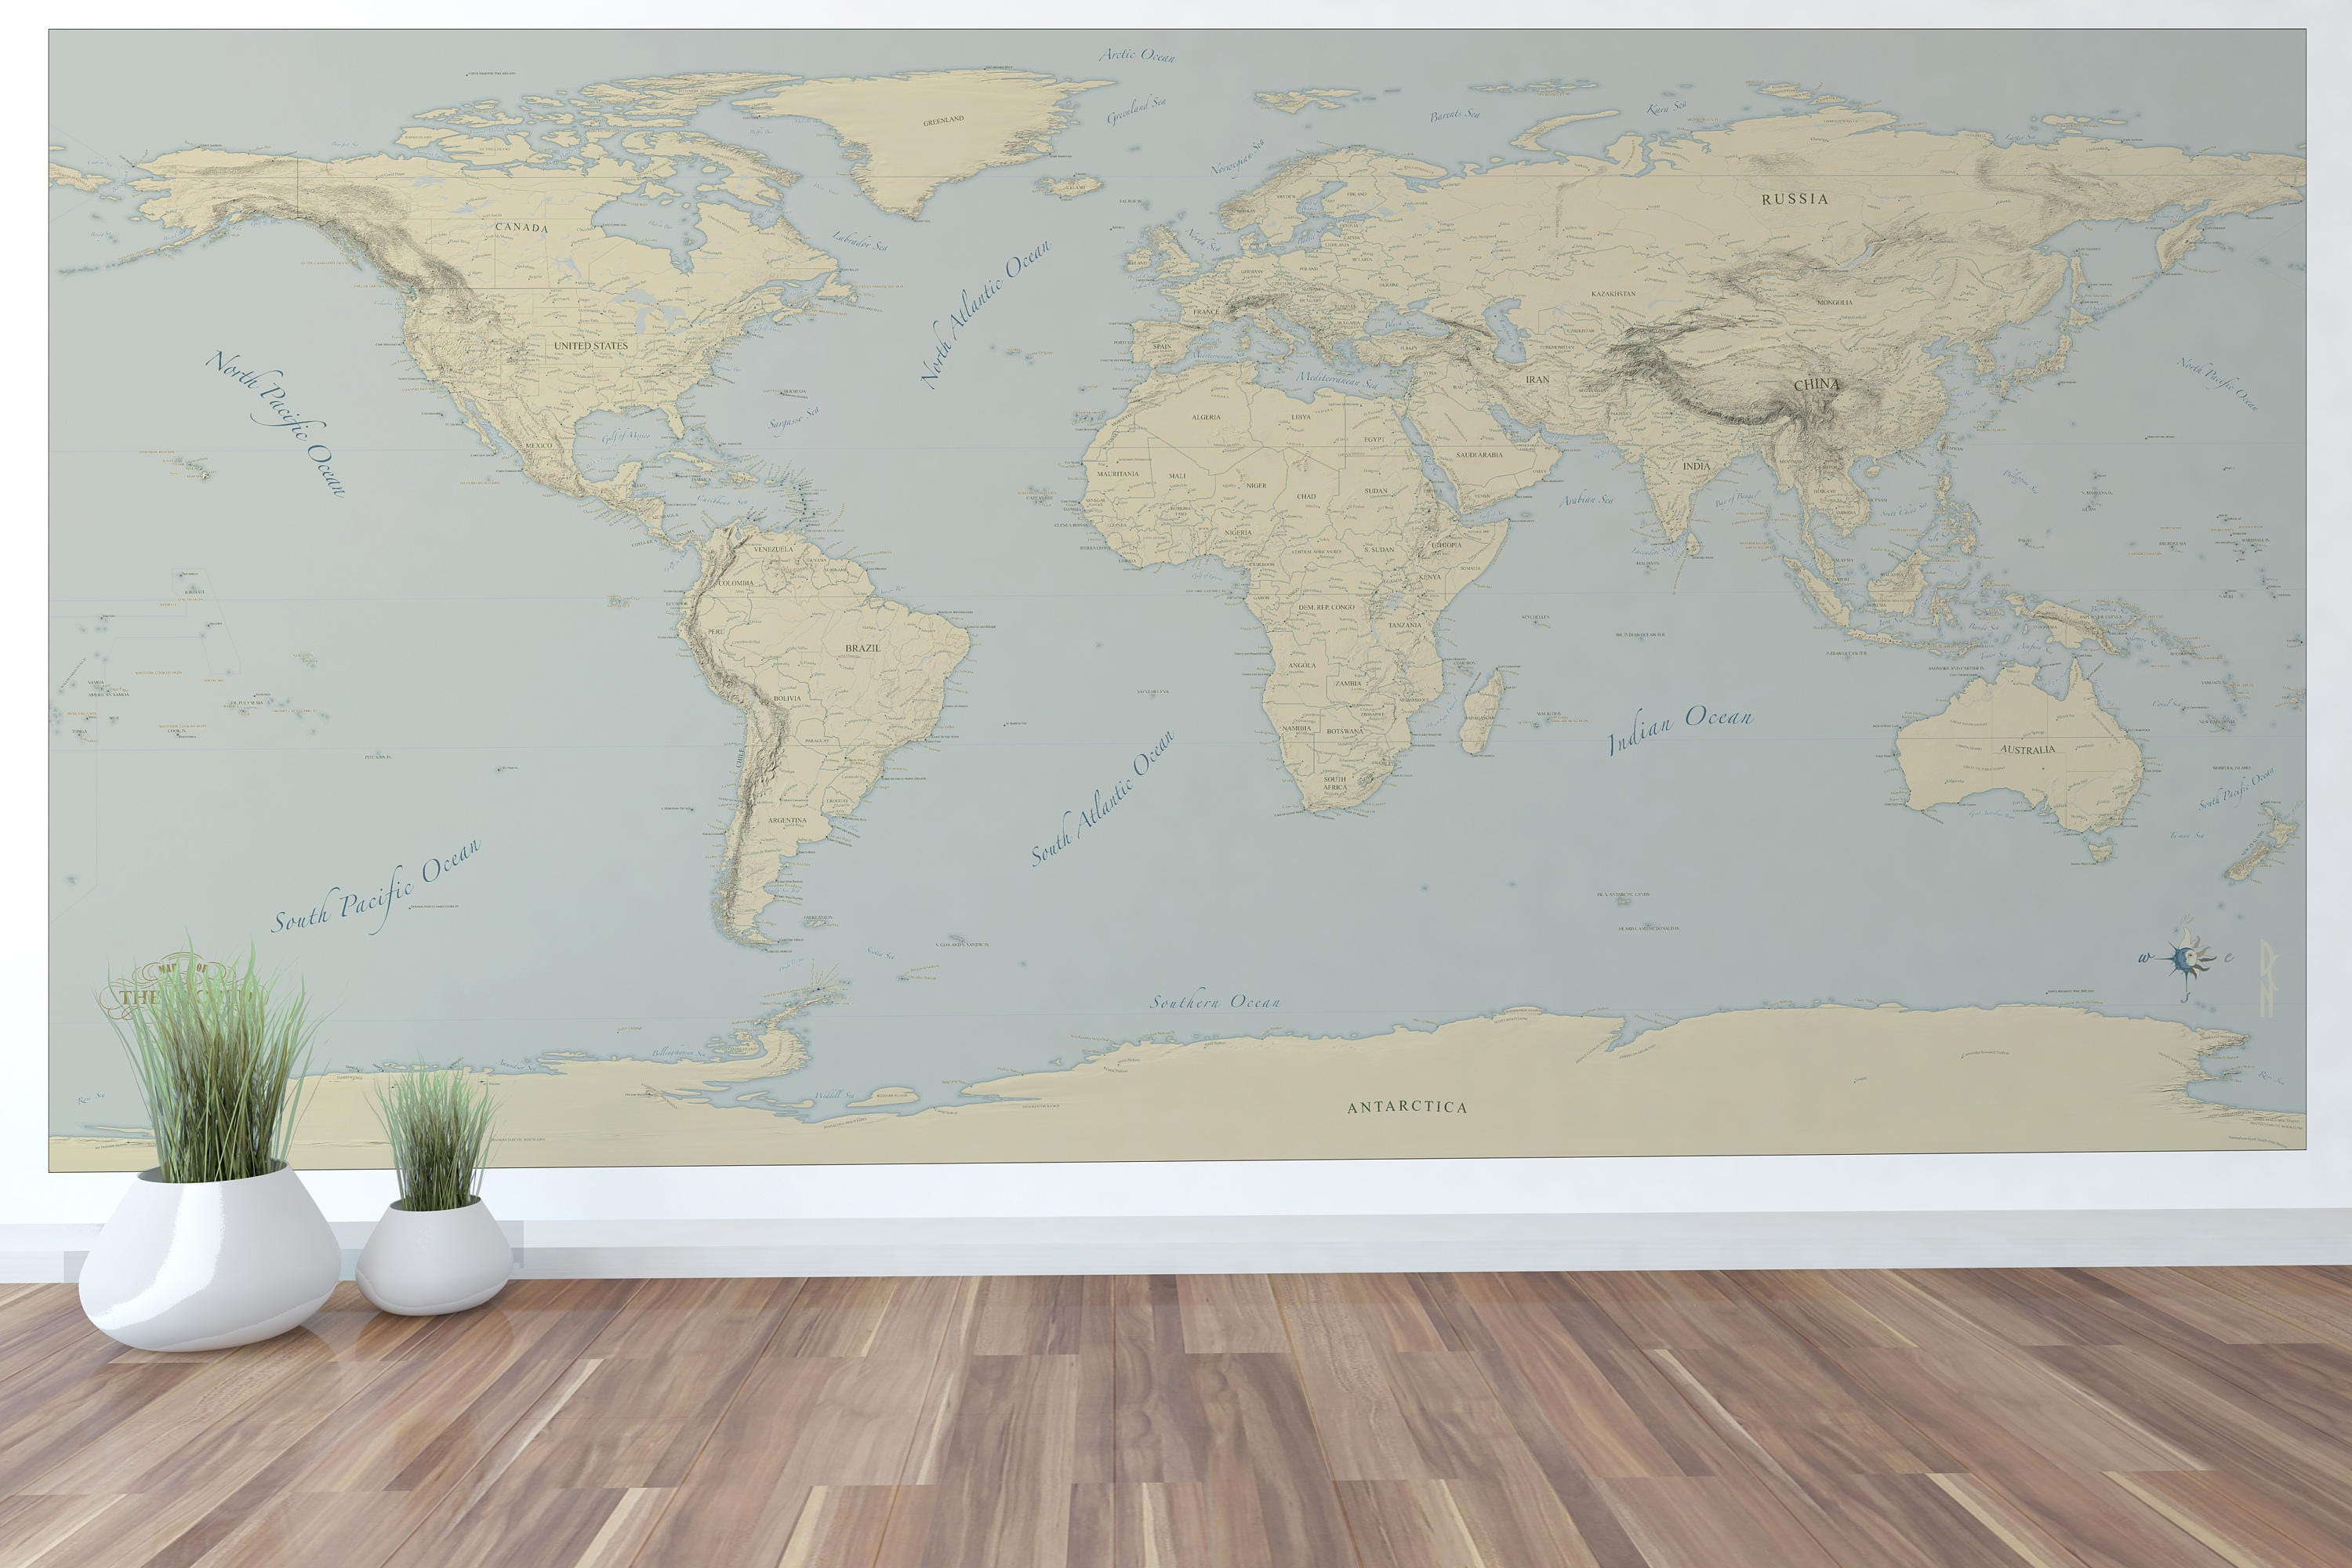 Giant world map mural stylish and educational world map wall zoom sciox Gallery